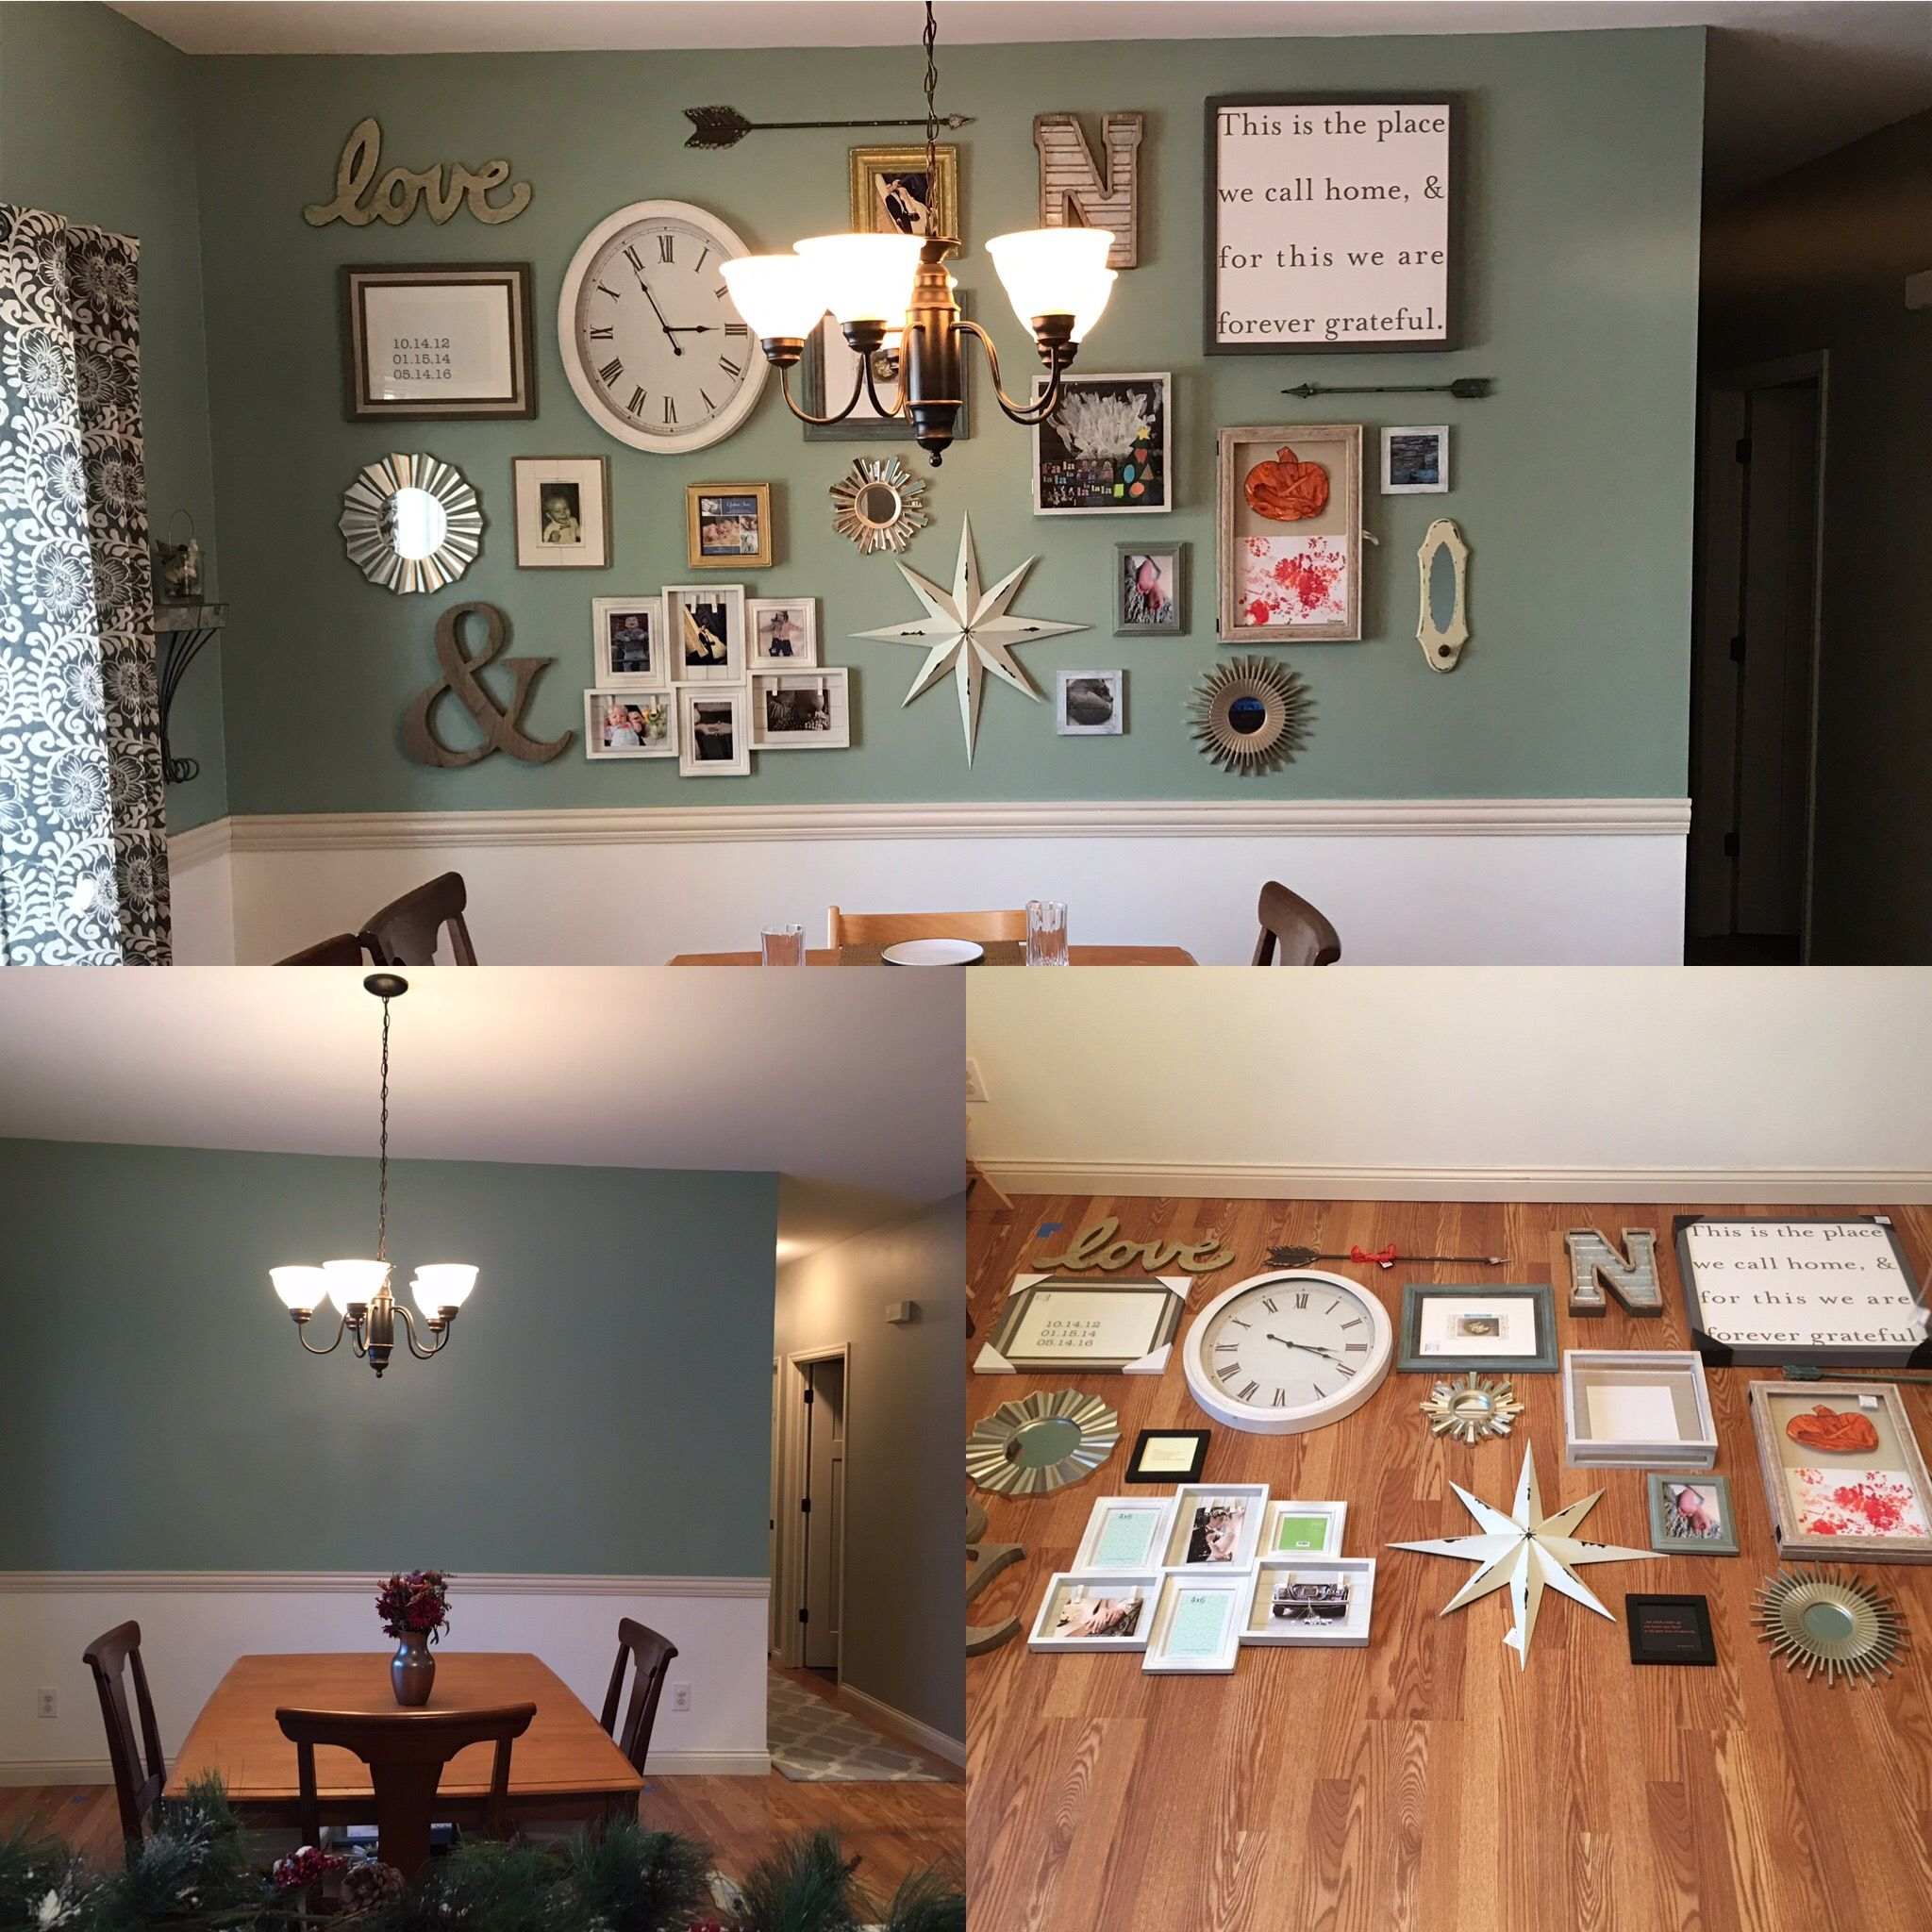 Furniture And More Galleries: Before And After Gallery Wall In Our Dining Room. We